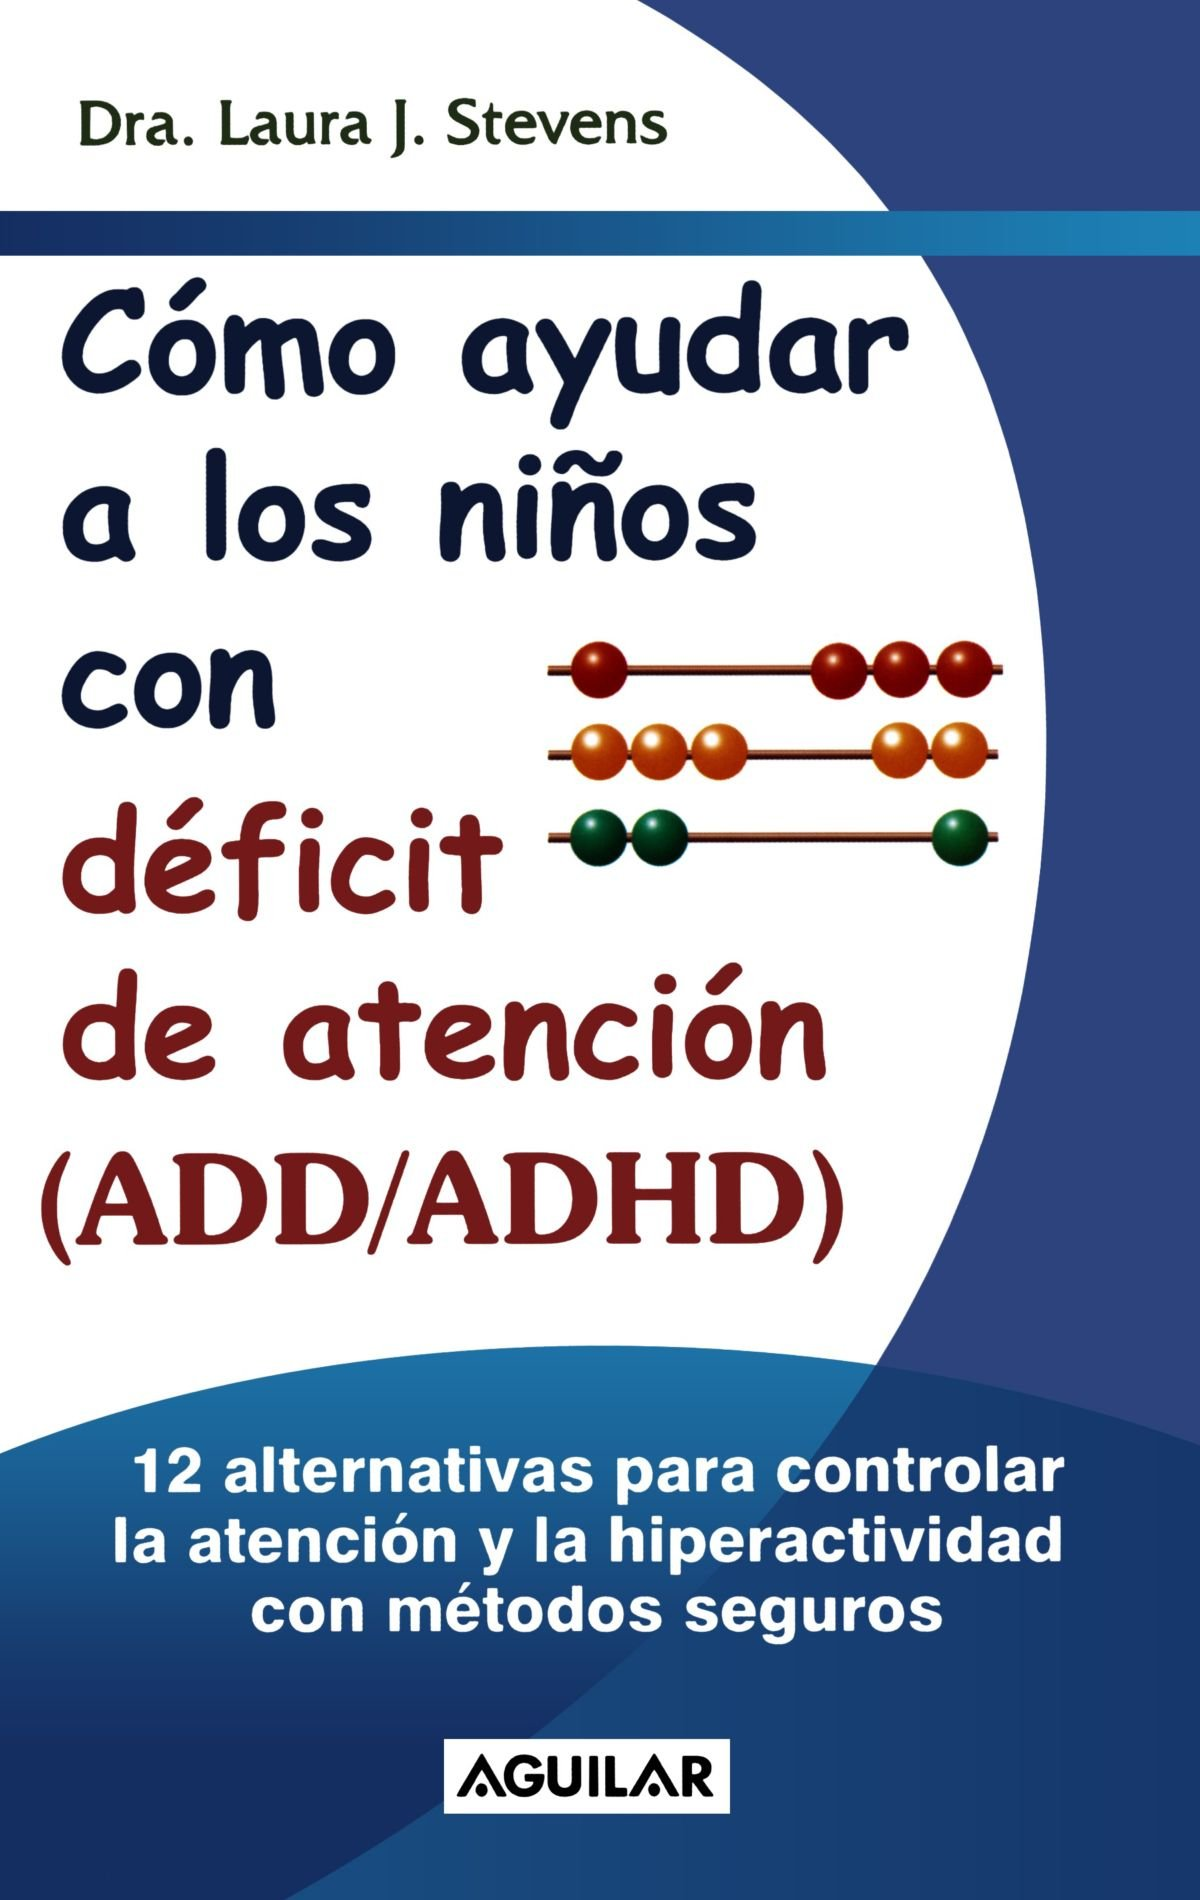 a586e6851a6 Como Ayudar A los Ninos Con Deficit de Atencion (ADD ADHD)   12 Effective  Ways to Help Your ADD ADHD Child (Spanish) Paperback – Nov 1 2001